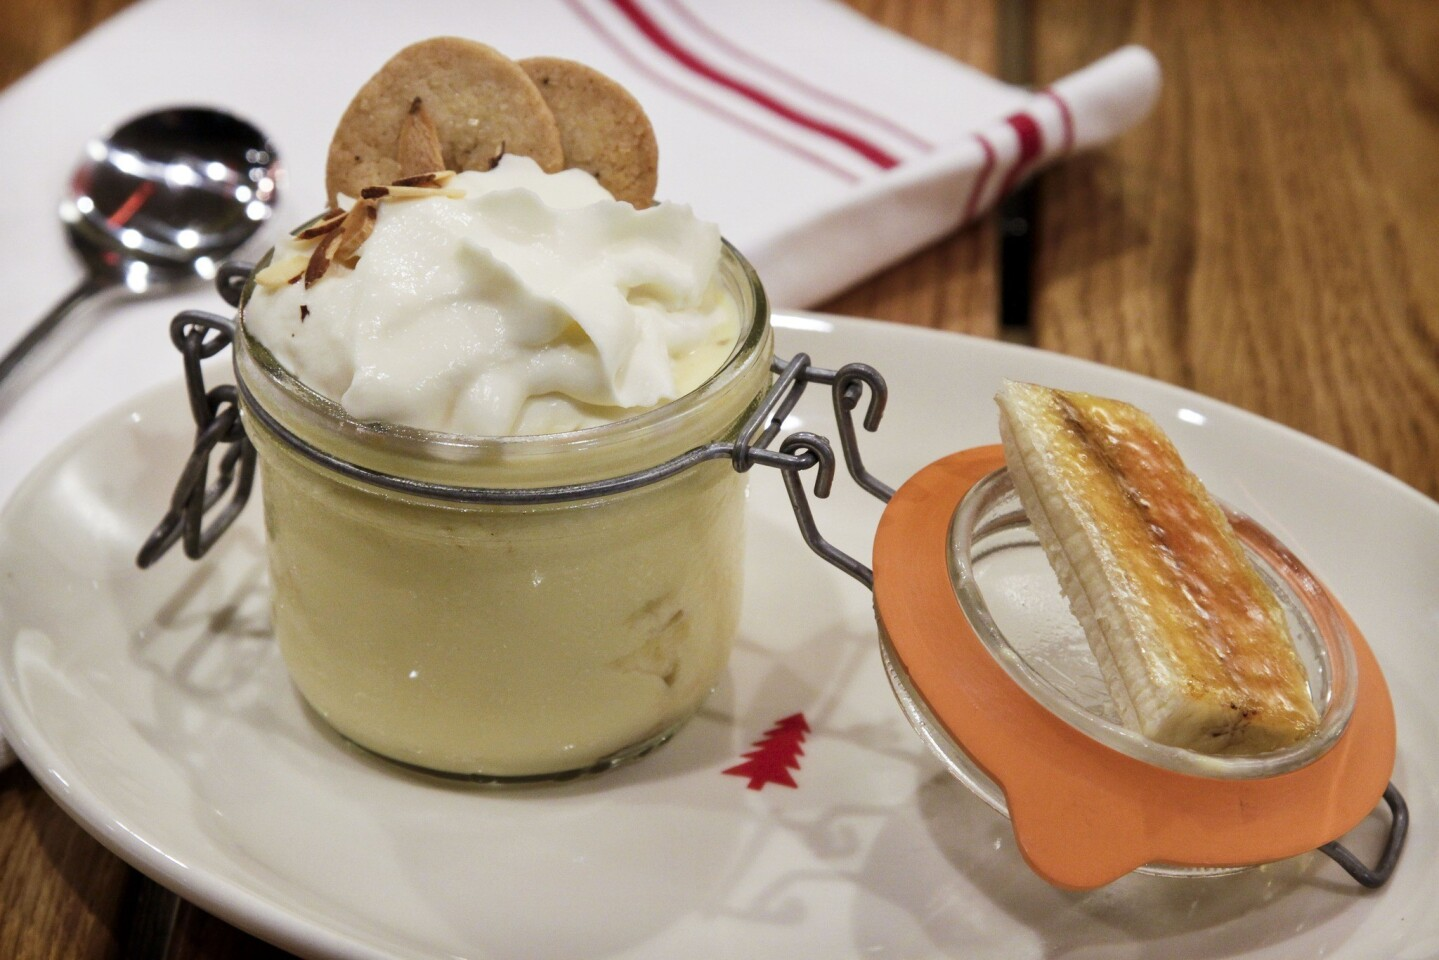 The banana cream pie is really more just banana pudding served in a Mason jar with homemade vanilla wafers.